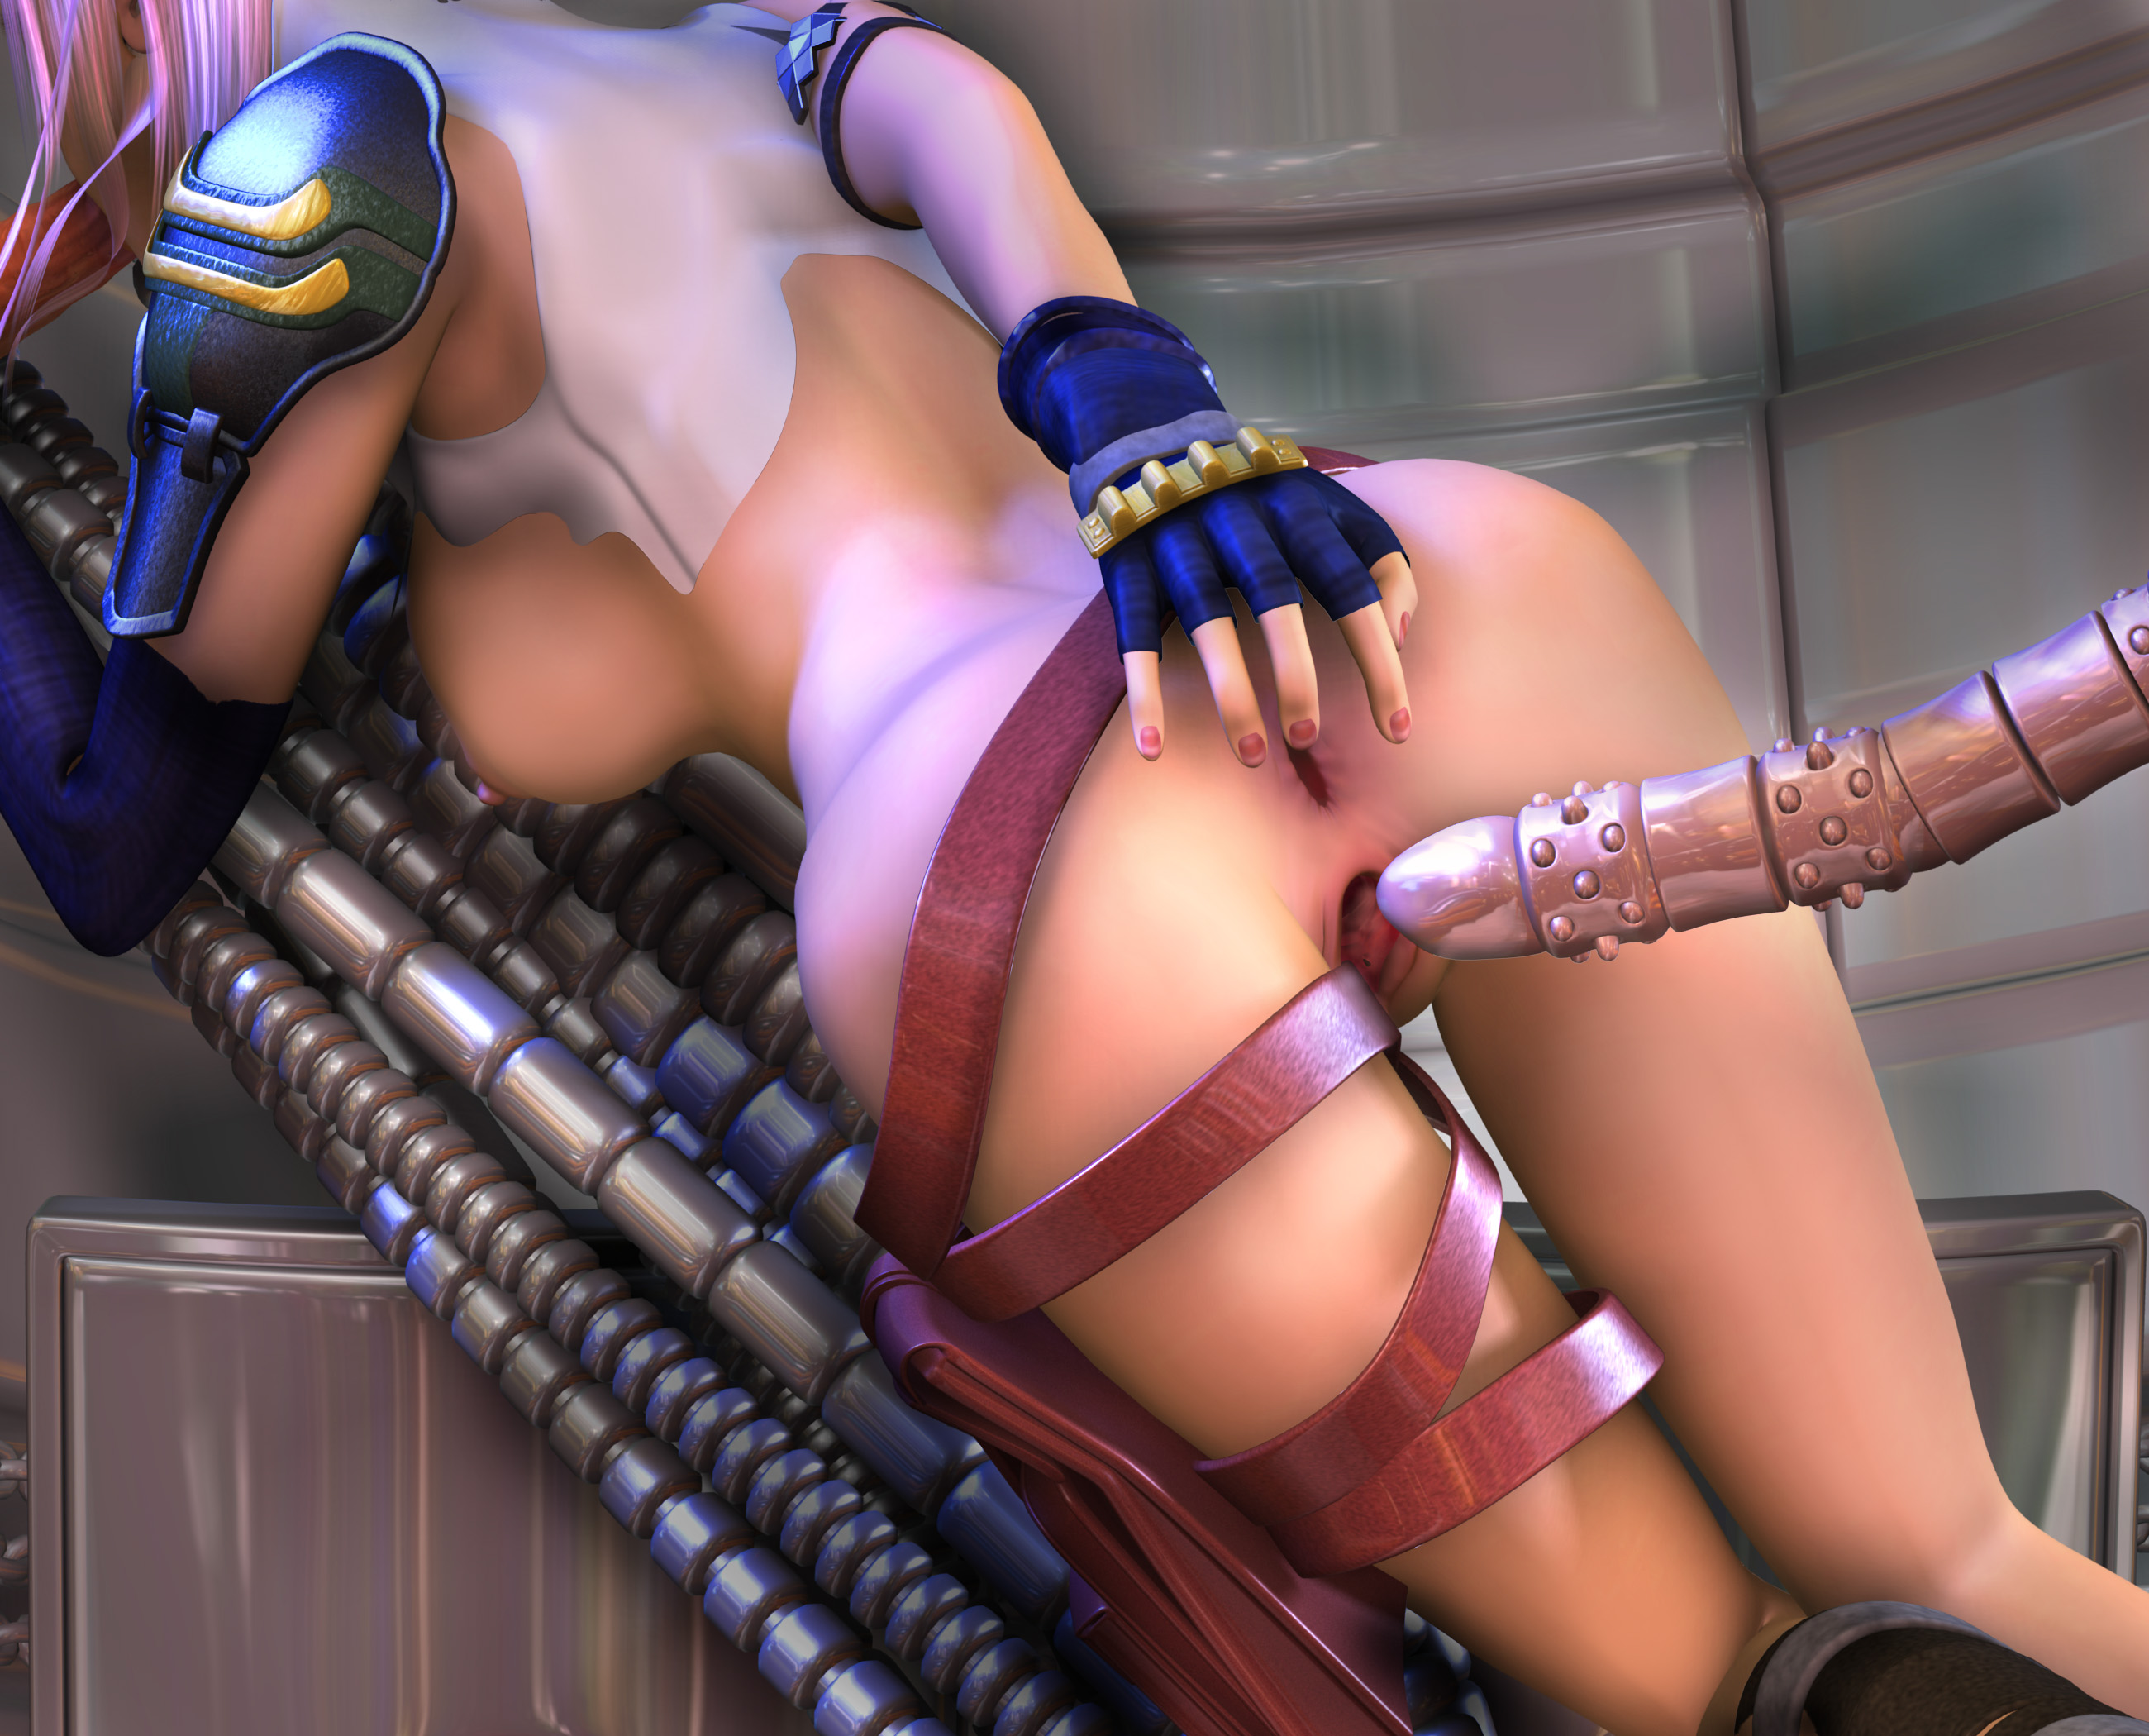 Sexy hot anime 3d women image hentia clips